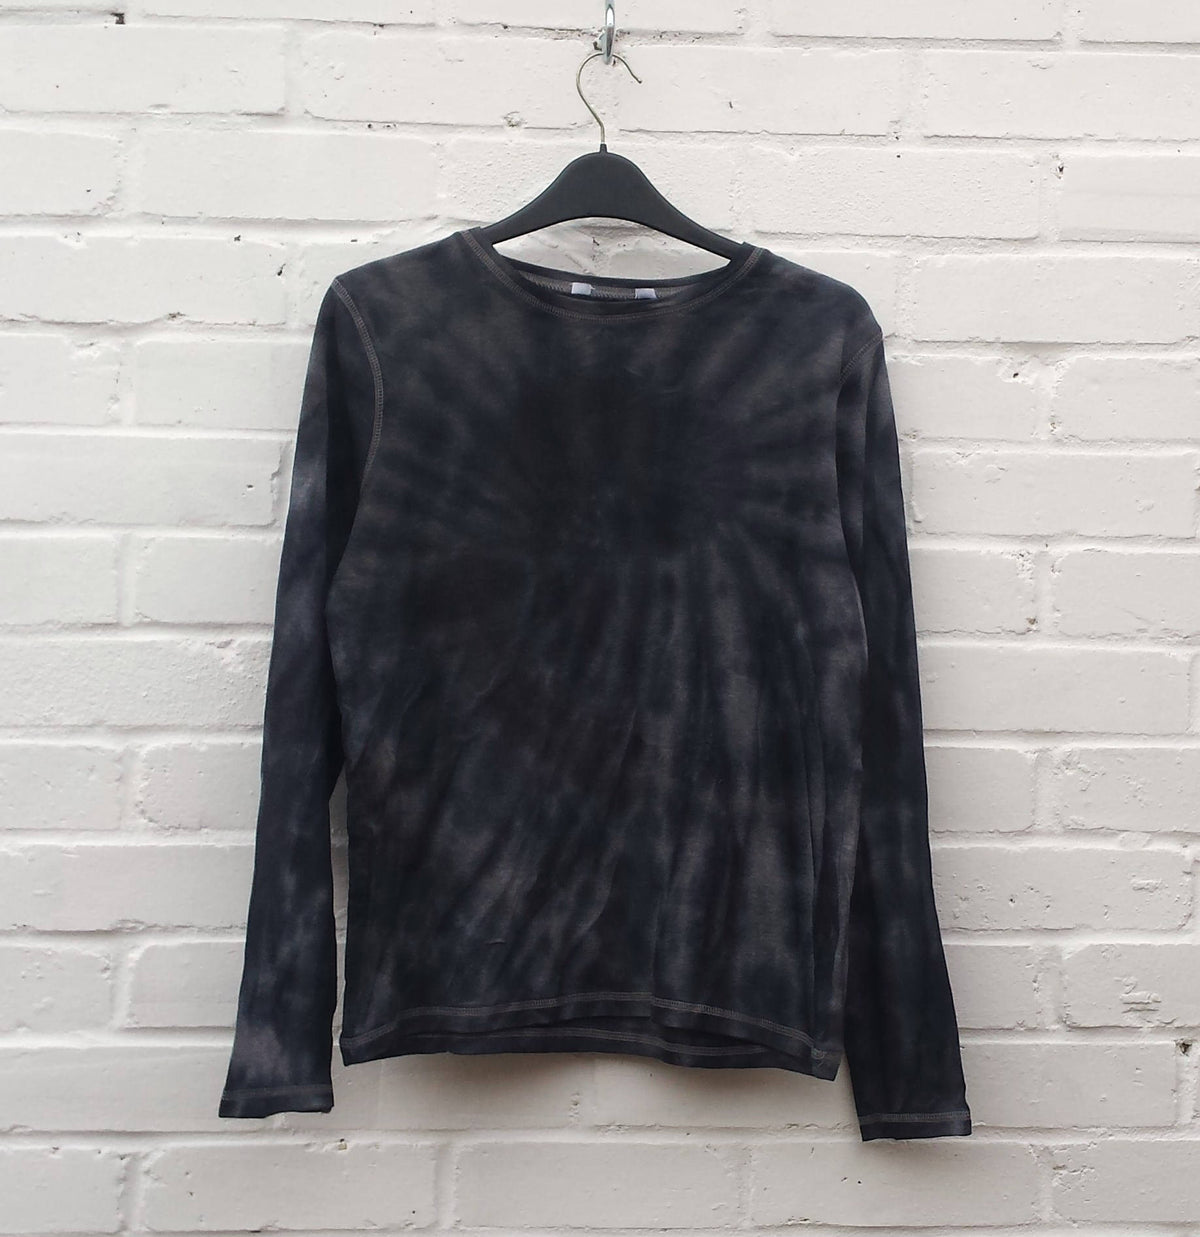 Tie Dye Top Long Sleeve Womens Top Black ALL SIZES Festival Clothing Hippie Bohemian